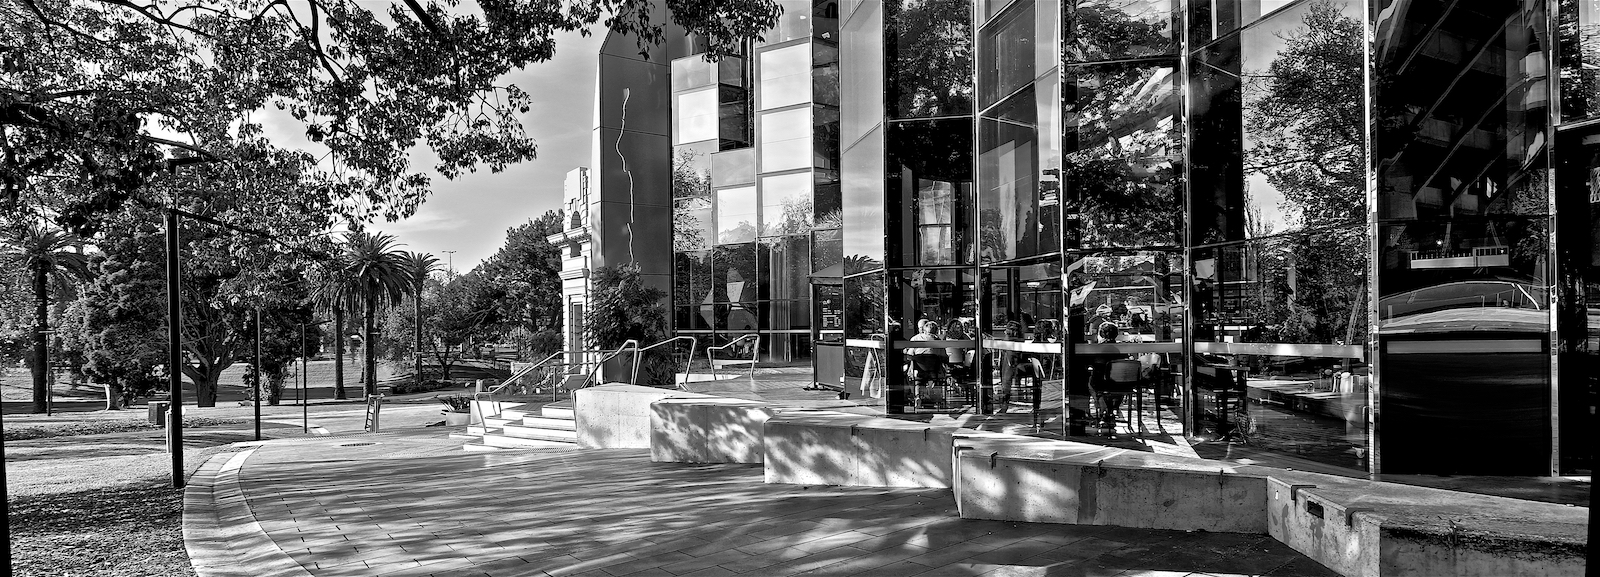 Geelong Library_HDR_PW_L2262 - Version 4.jpg